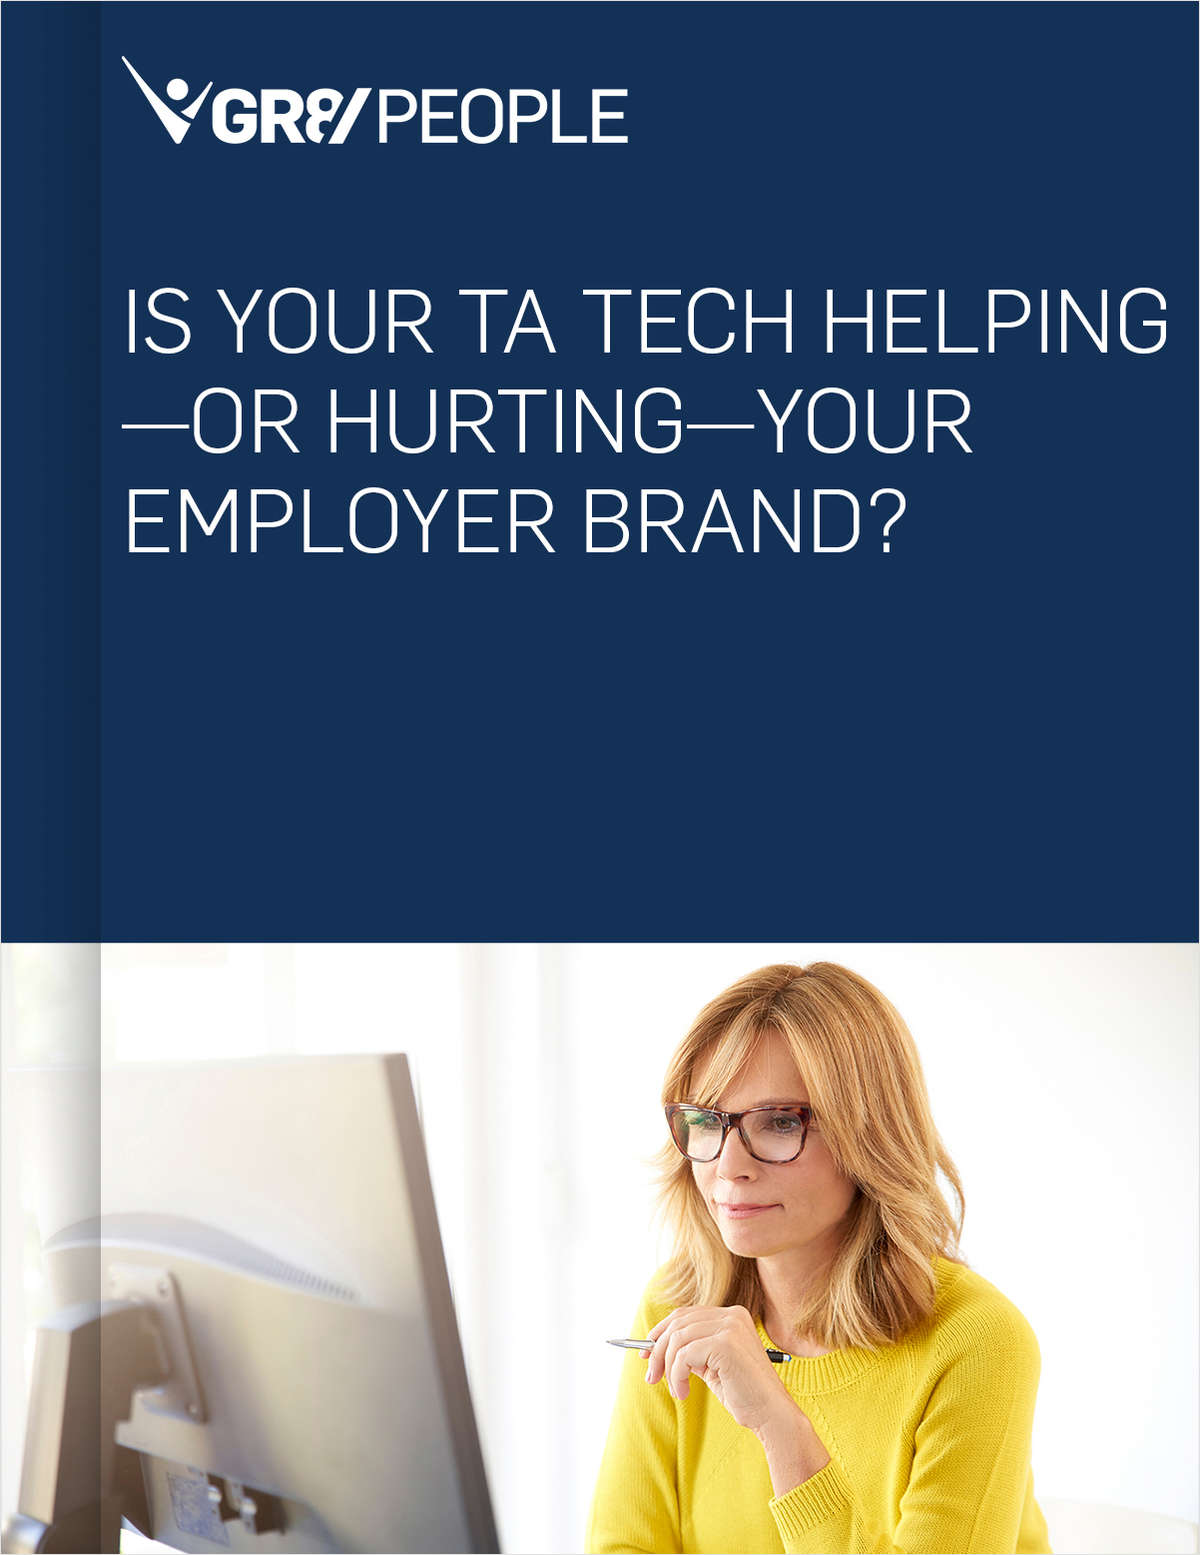 Is Your TA Tech Helping--Or Hurting--Your Employer Brand?